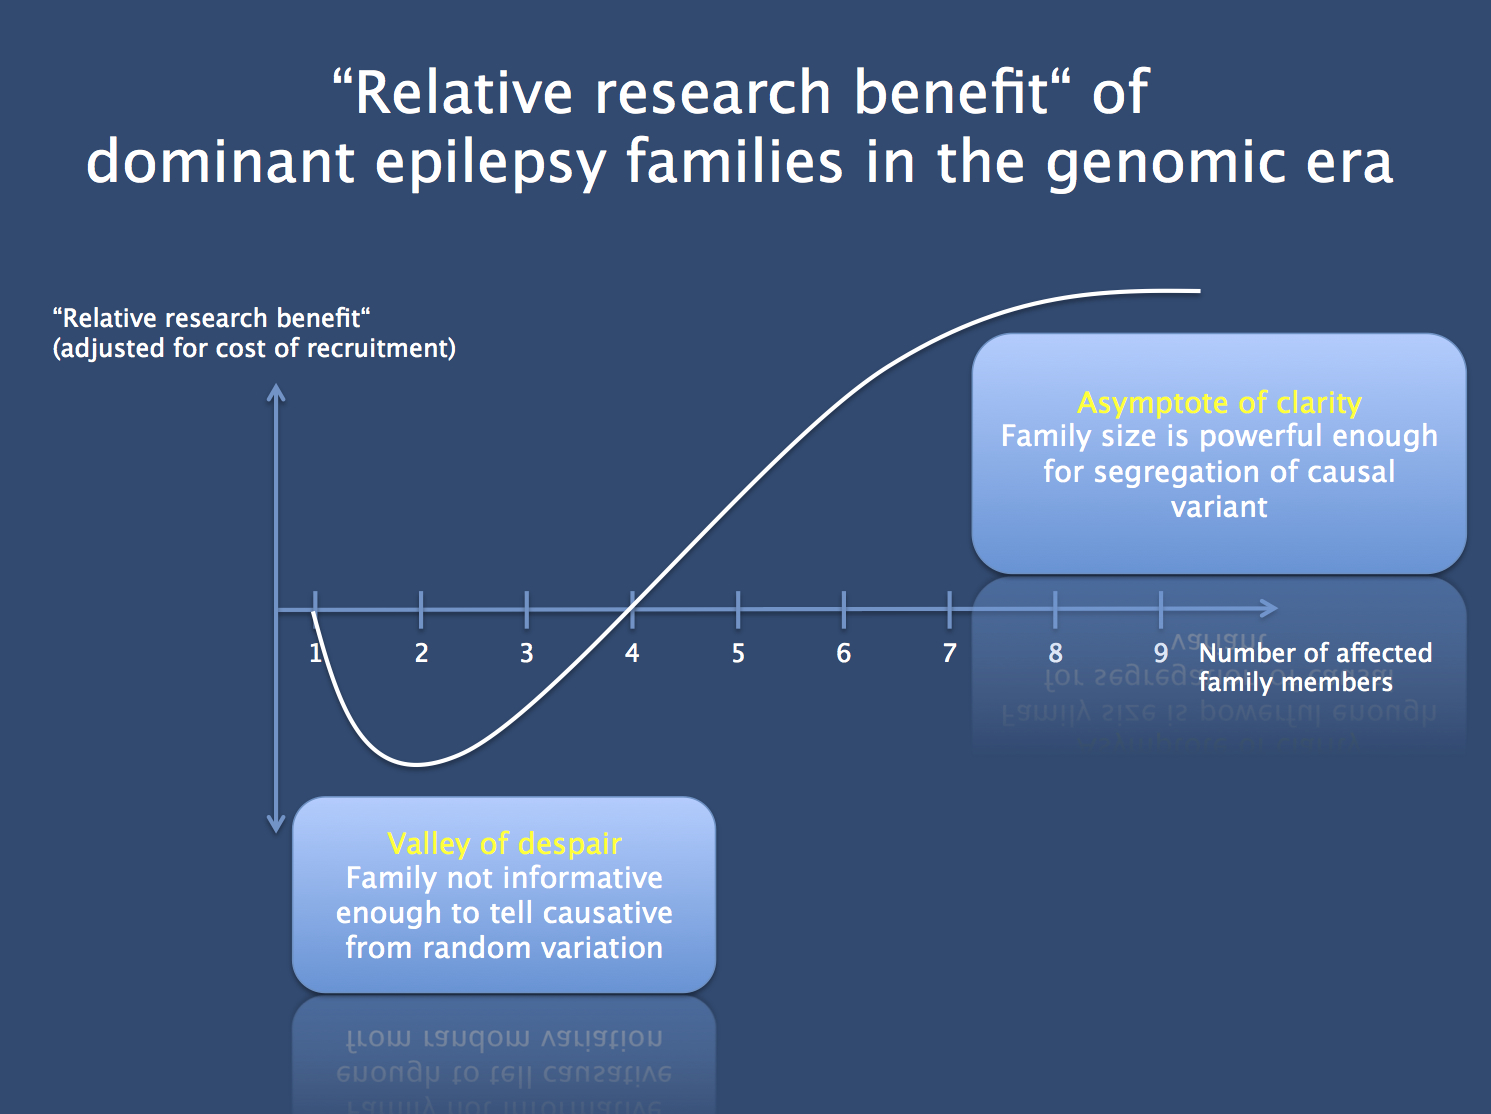 "The hypothetical measure of ""relative research benefit"". Compared to the recruitment of singletons, what would be the benefit of using the same efforts for recruiting families? We would recruit fewer families, but theses families might give us more genetic information. As you can see from the chart, family recruitment of dominant families only makes sense if the families are sufficiently large. In smaller dominant families, there will be too much genomic noise to identify the causative gene. Accordingly, recruiting small families may lead us into the ""valley of despair"". The relative research benefit increases only if the families become sufficiently large."